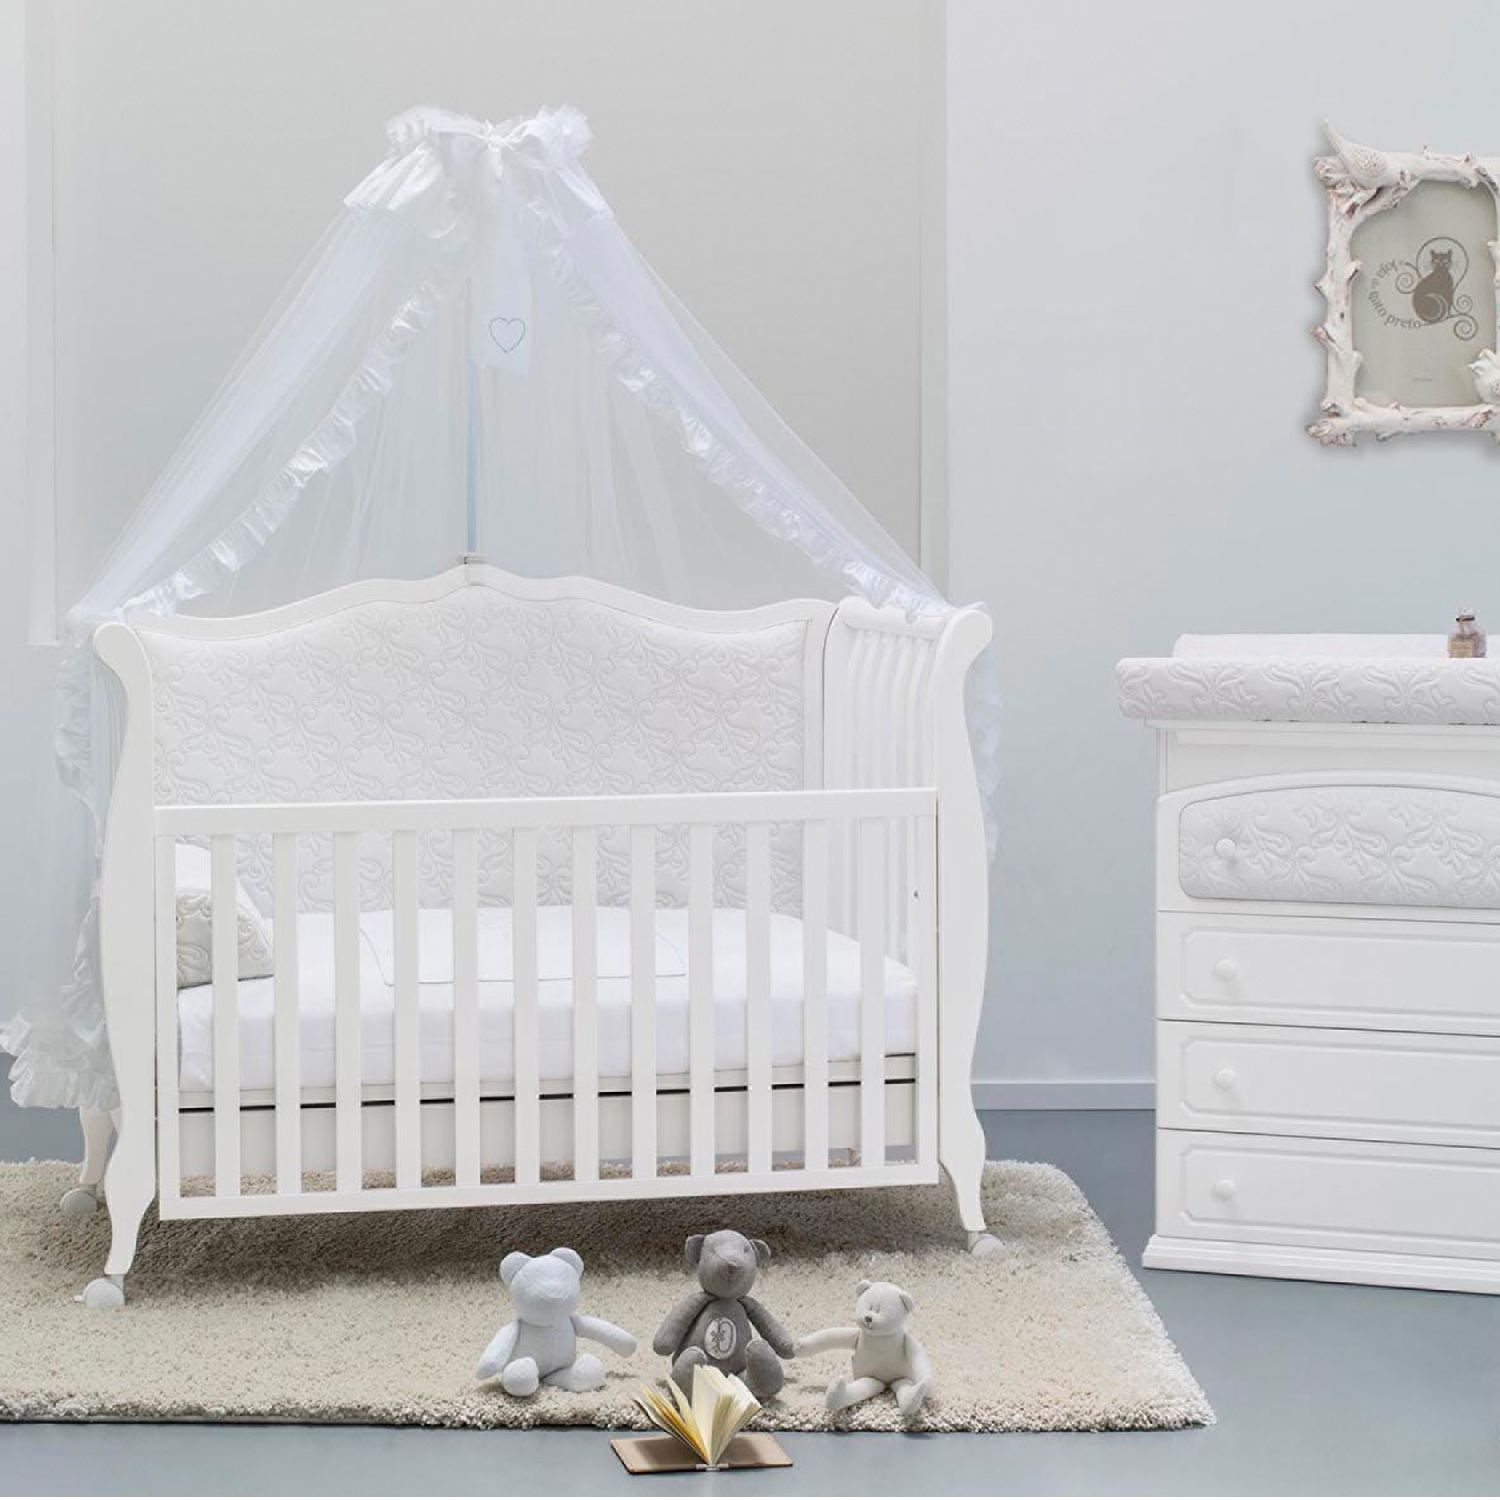 luxus babyzimmer aus italien design rinascimento von azzurra design stilvolles babybett in. Black Bedroom Furniture Sets. Home Design Ideas